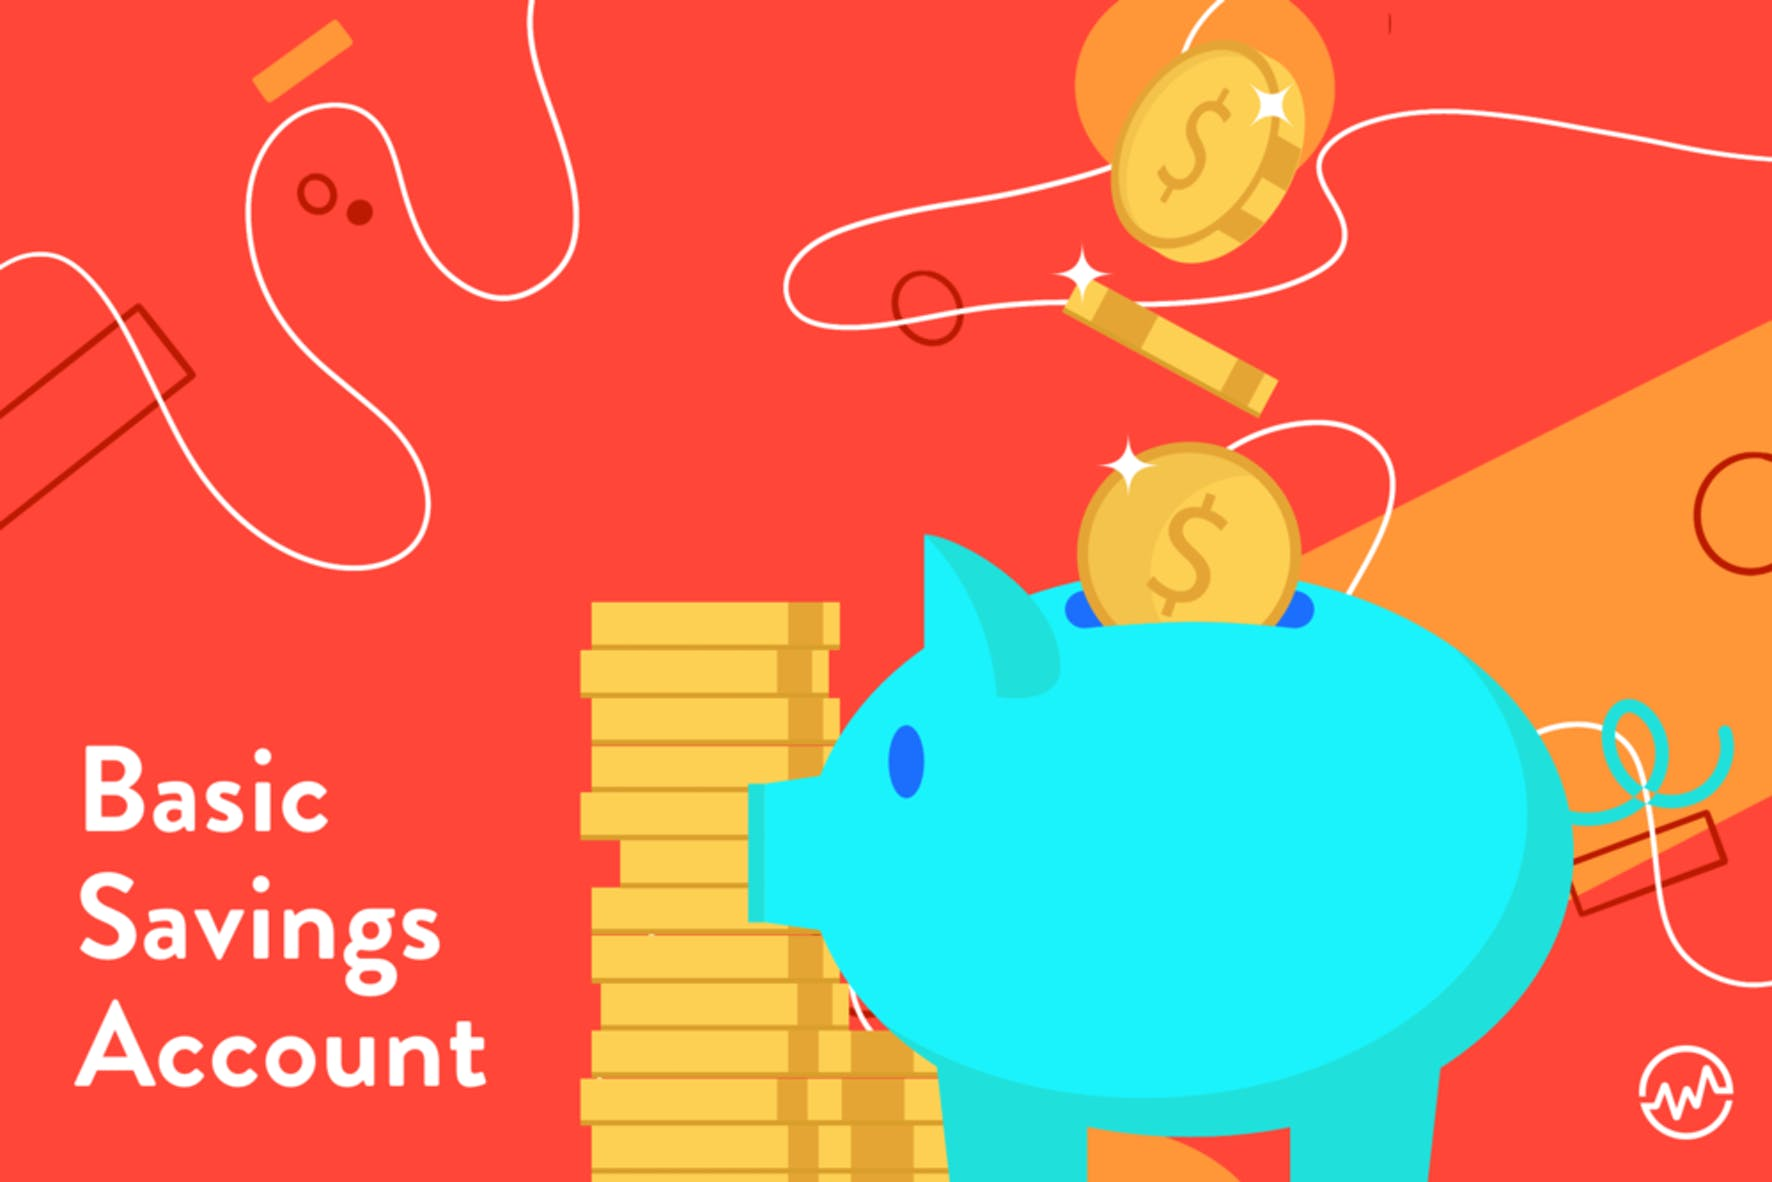 Types of Savings Accounts: Basic Savings Account